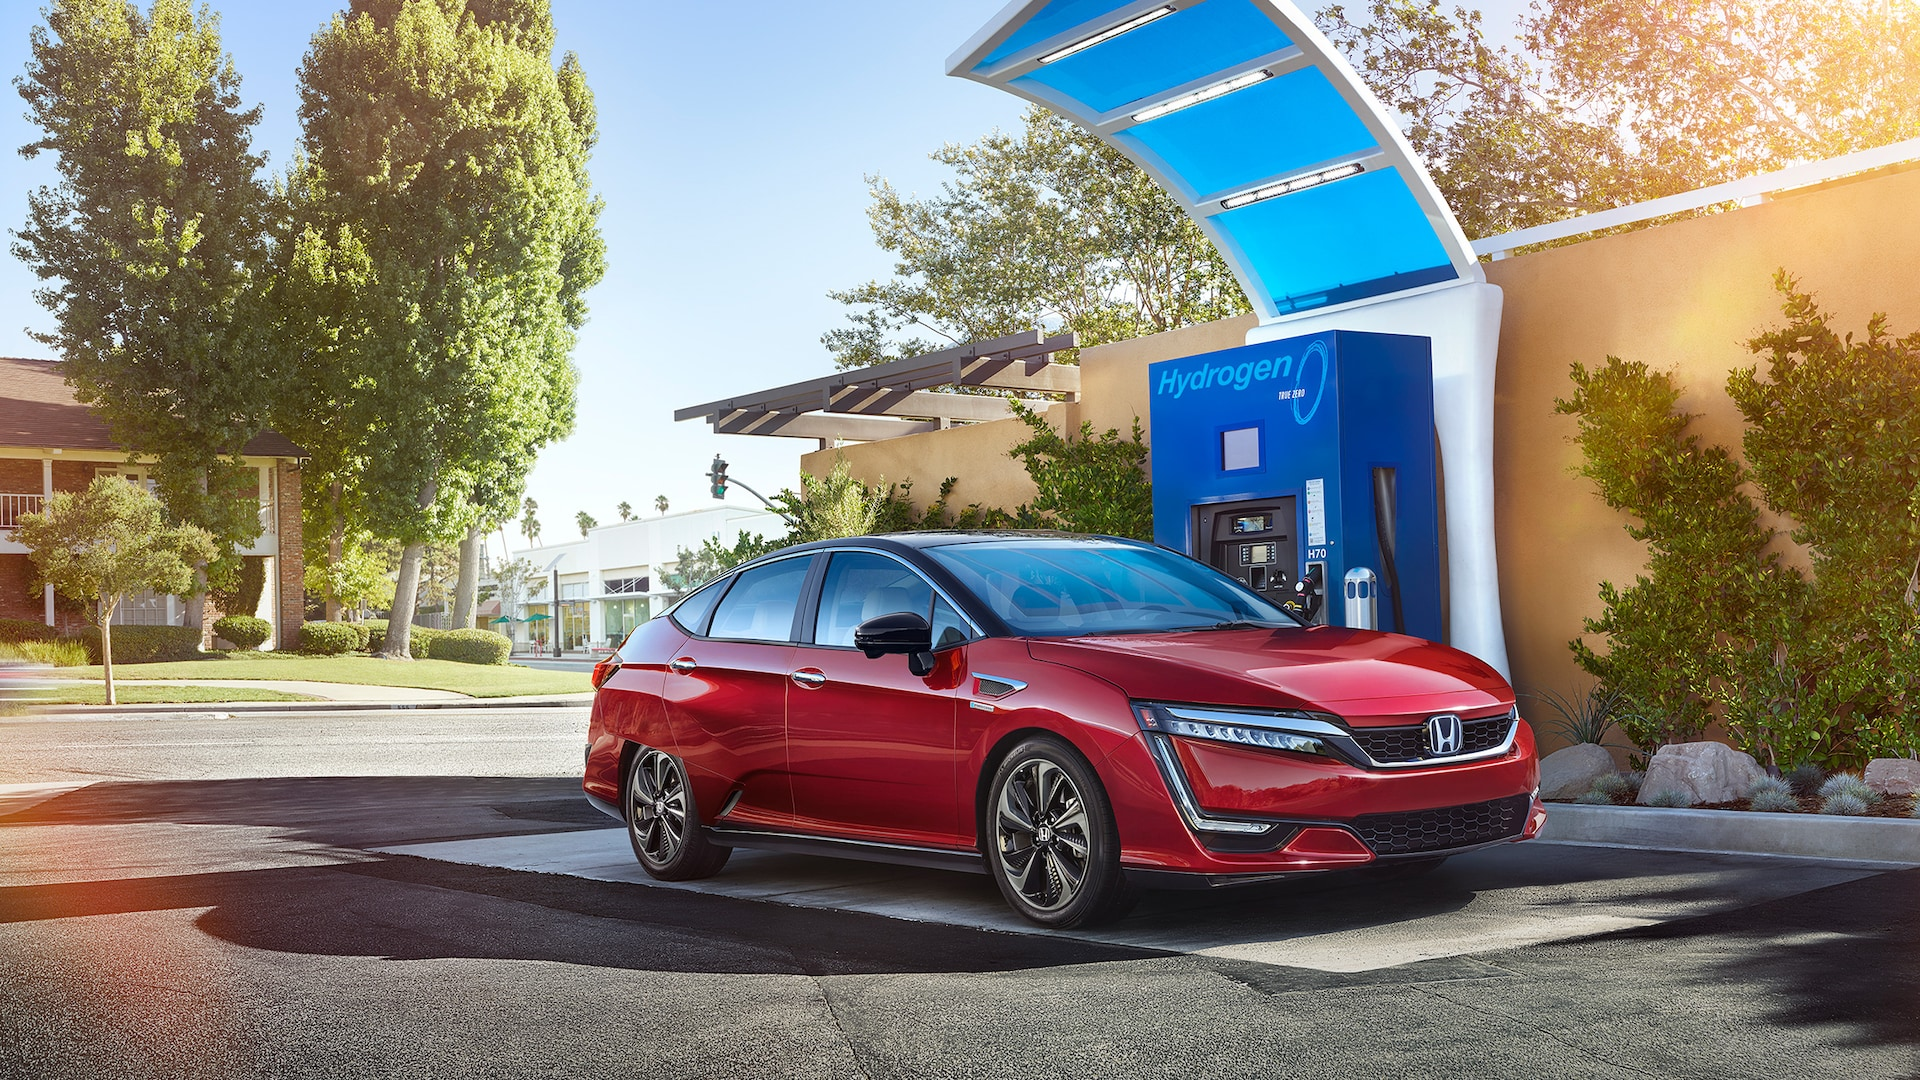 Front view of 2021 Honda Clarity Fuel Cell refueling at hydrogen fuel station.